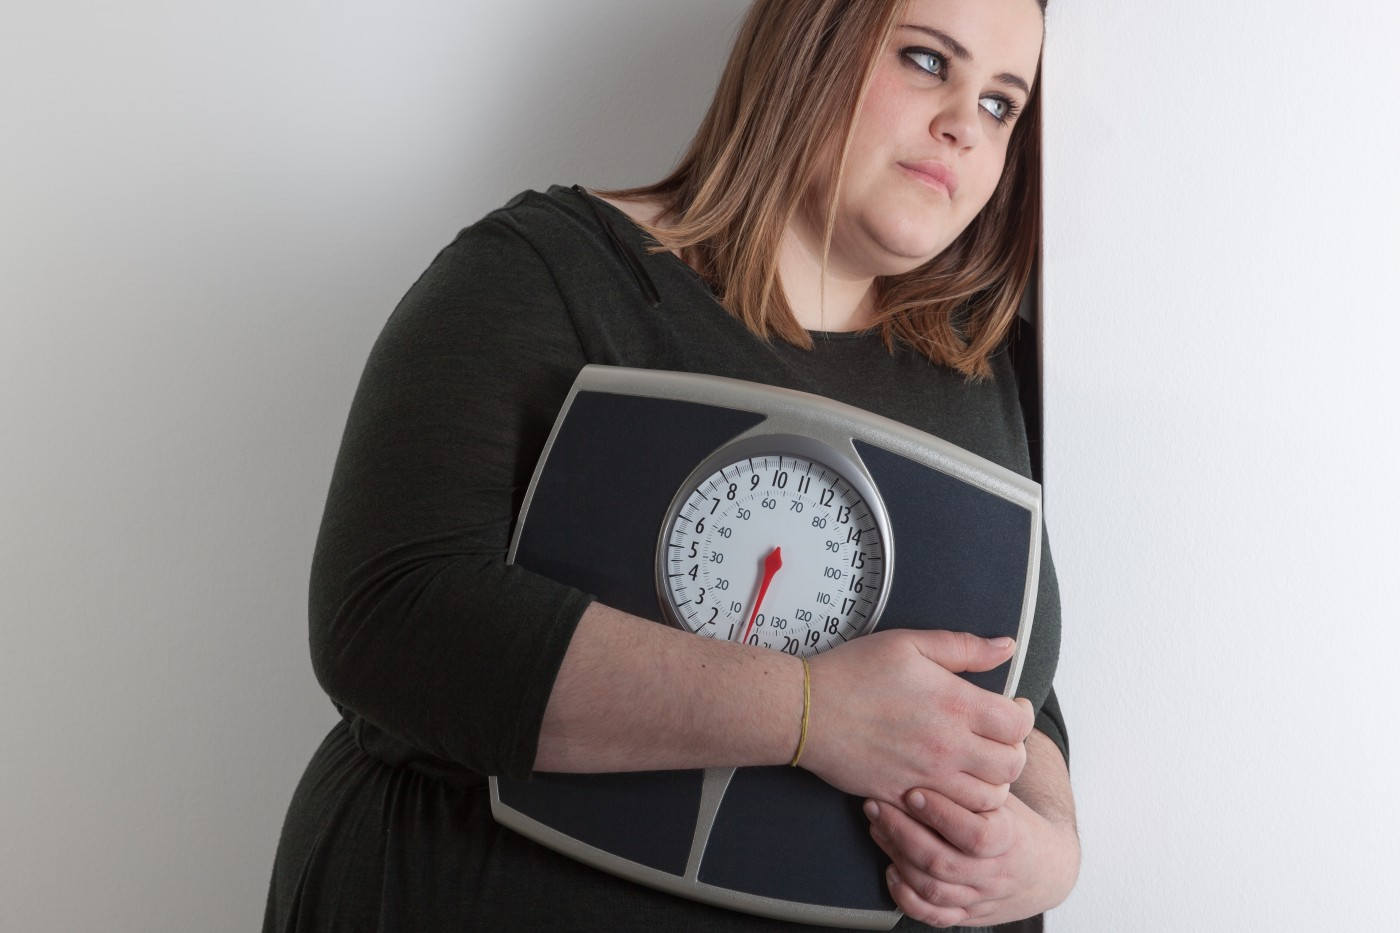 Sleeve Gastrectomy Study Reveals Patients Can Regain Weight and Develop Diabetes in the Long-Term